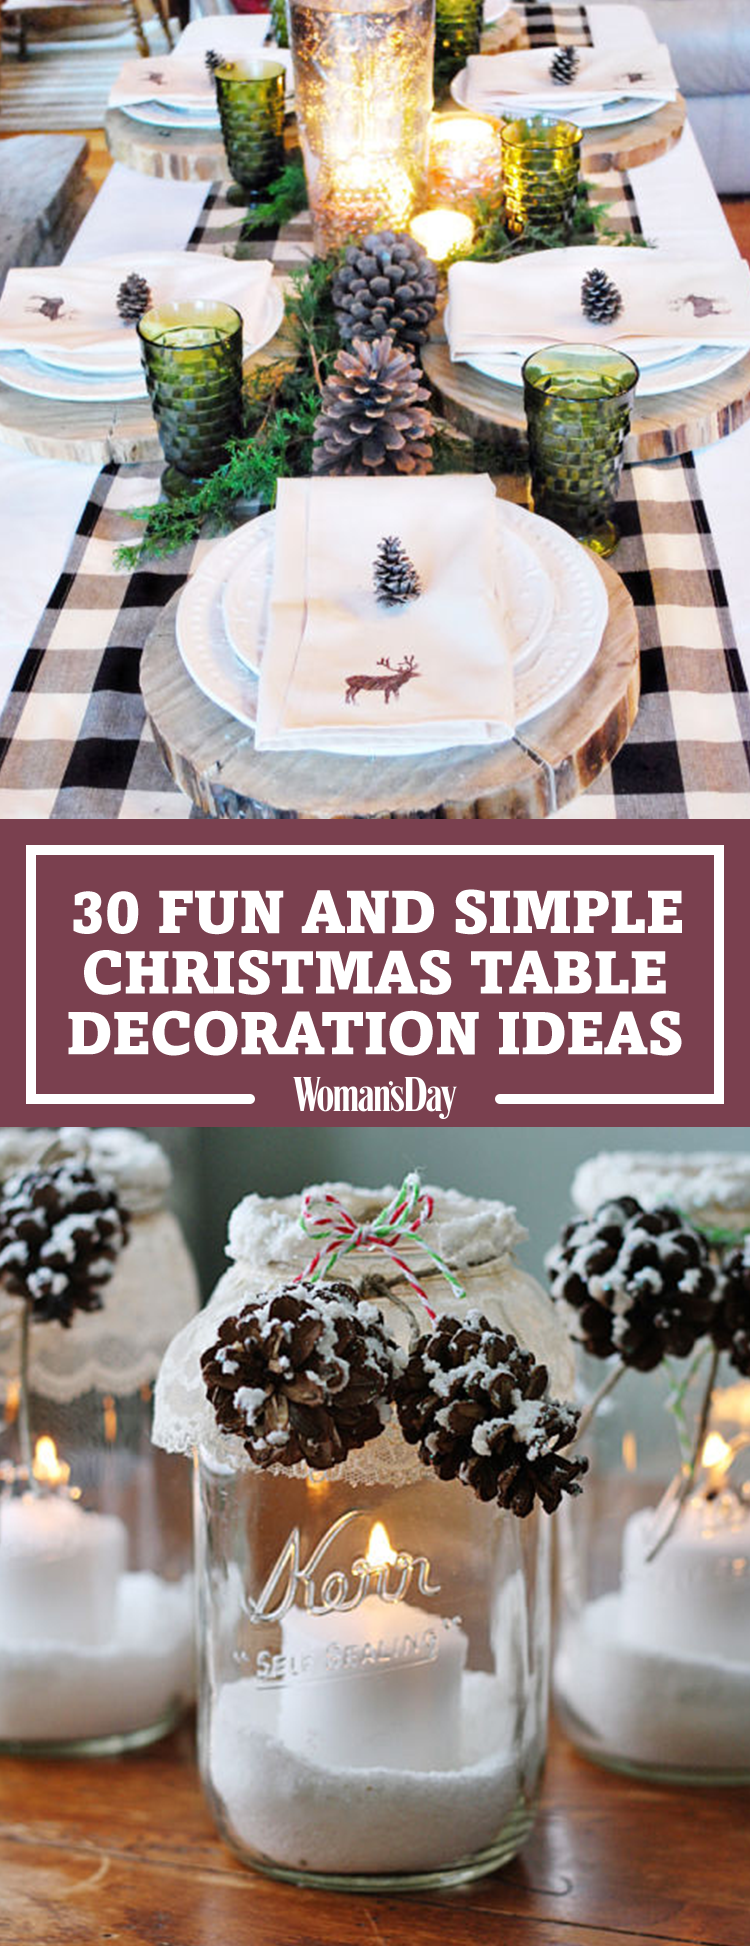 38 christmas table decorations centerpieces ideas for holiday table decor womans day - Simple Christmas Table Decorations